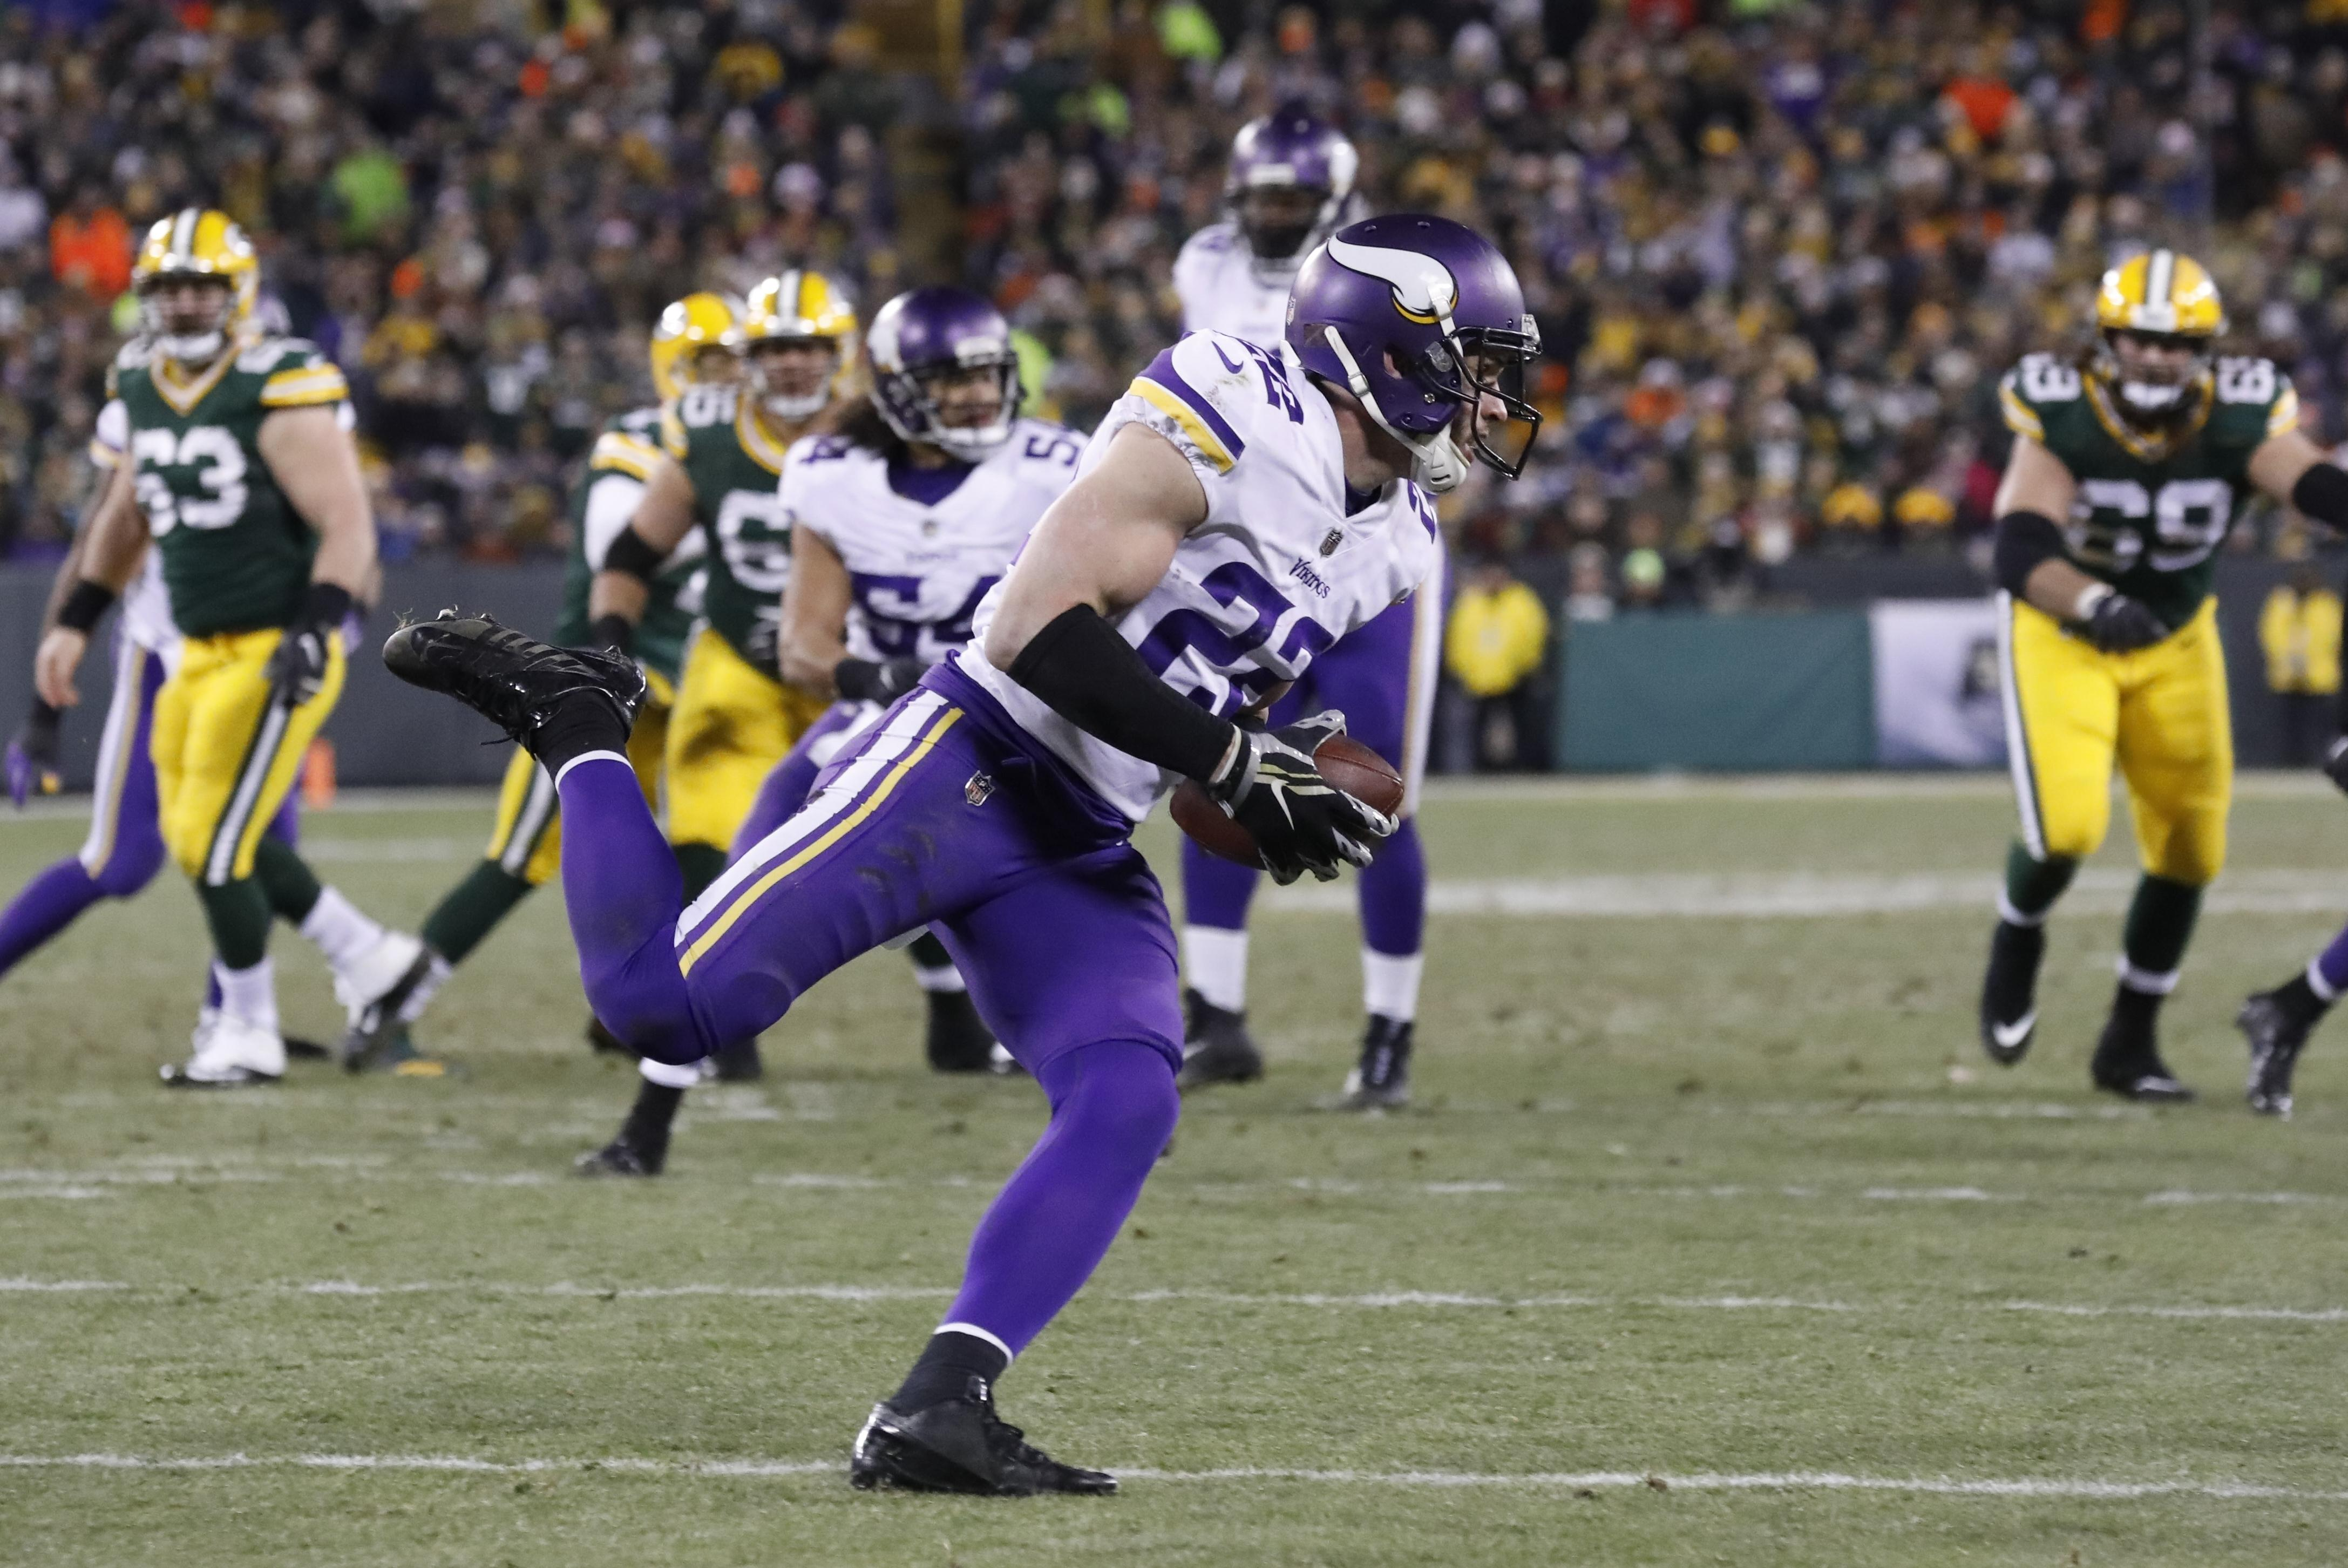 037d45767 The strong safety  Harrison Smith steadies Vikings defense - Washington  Times